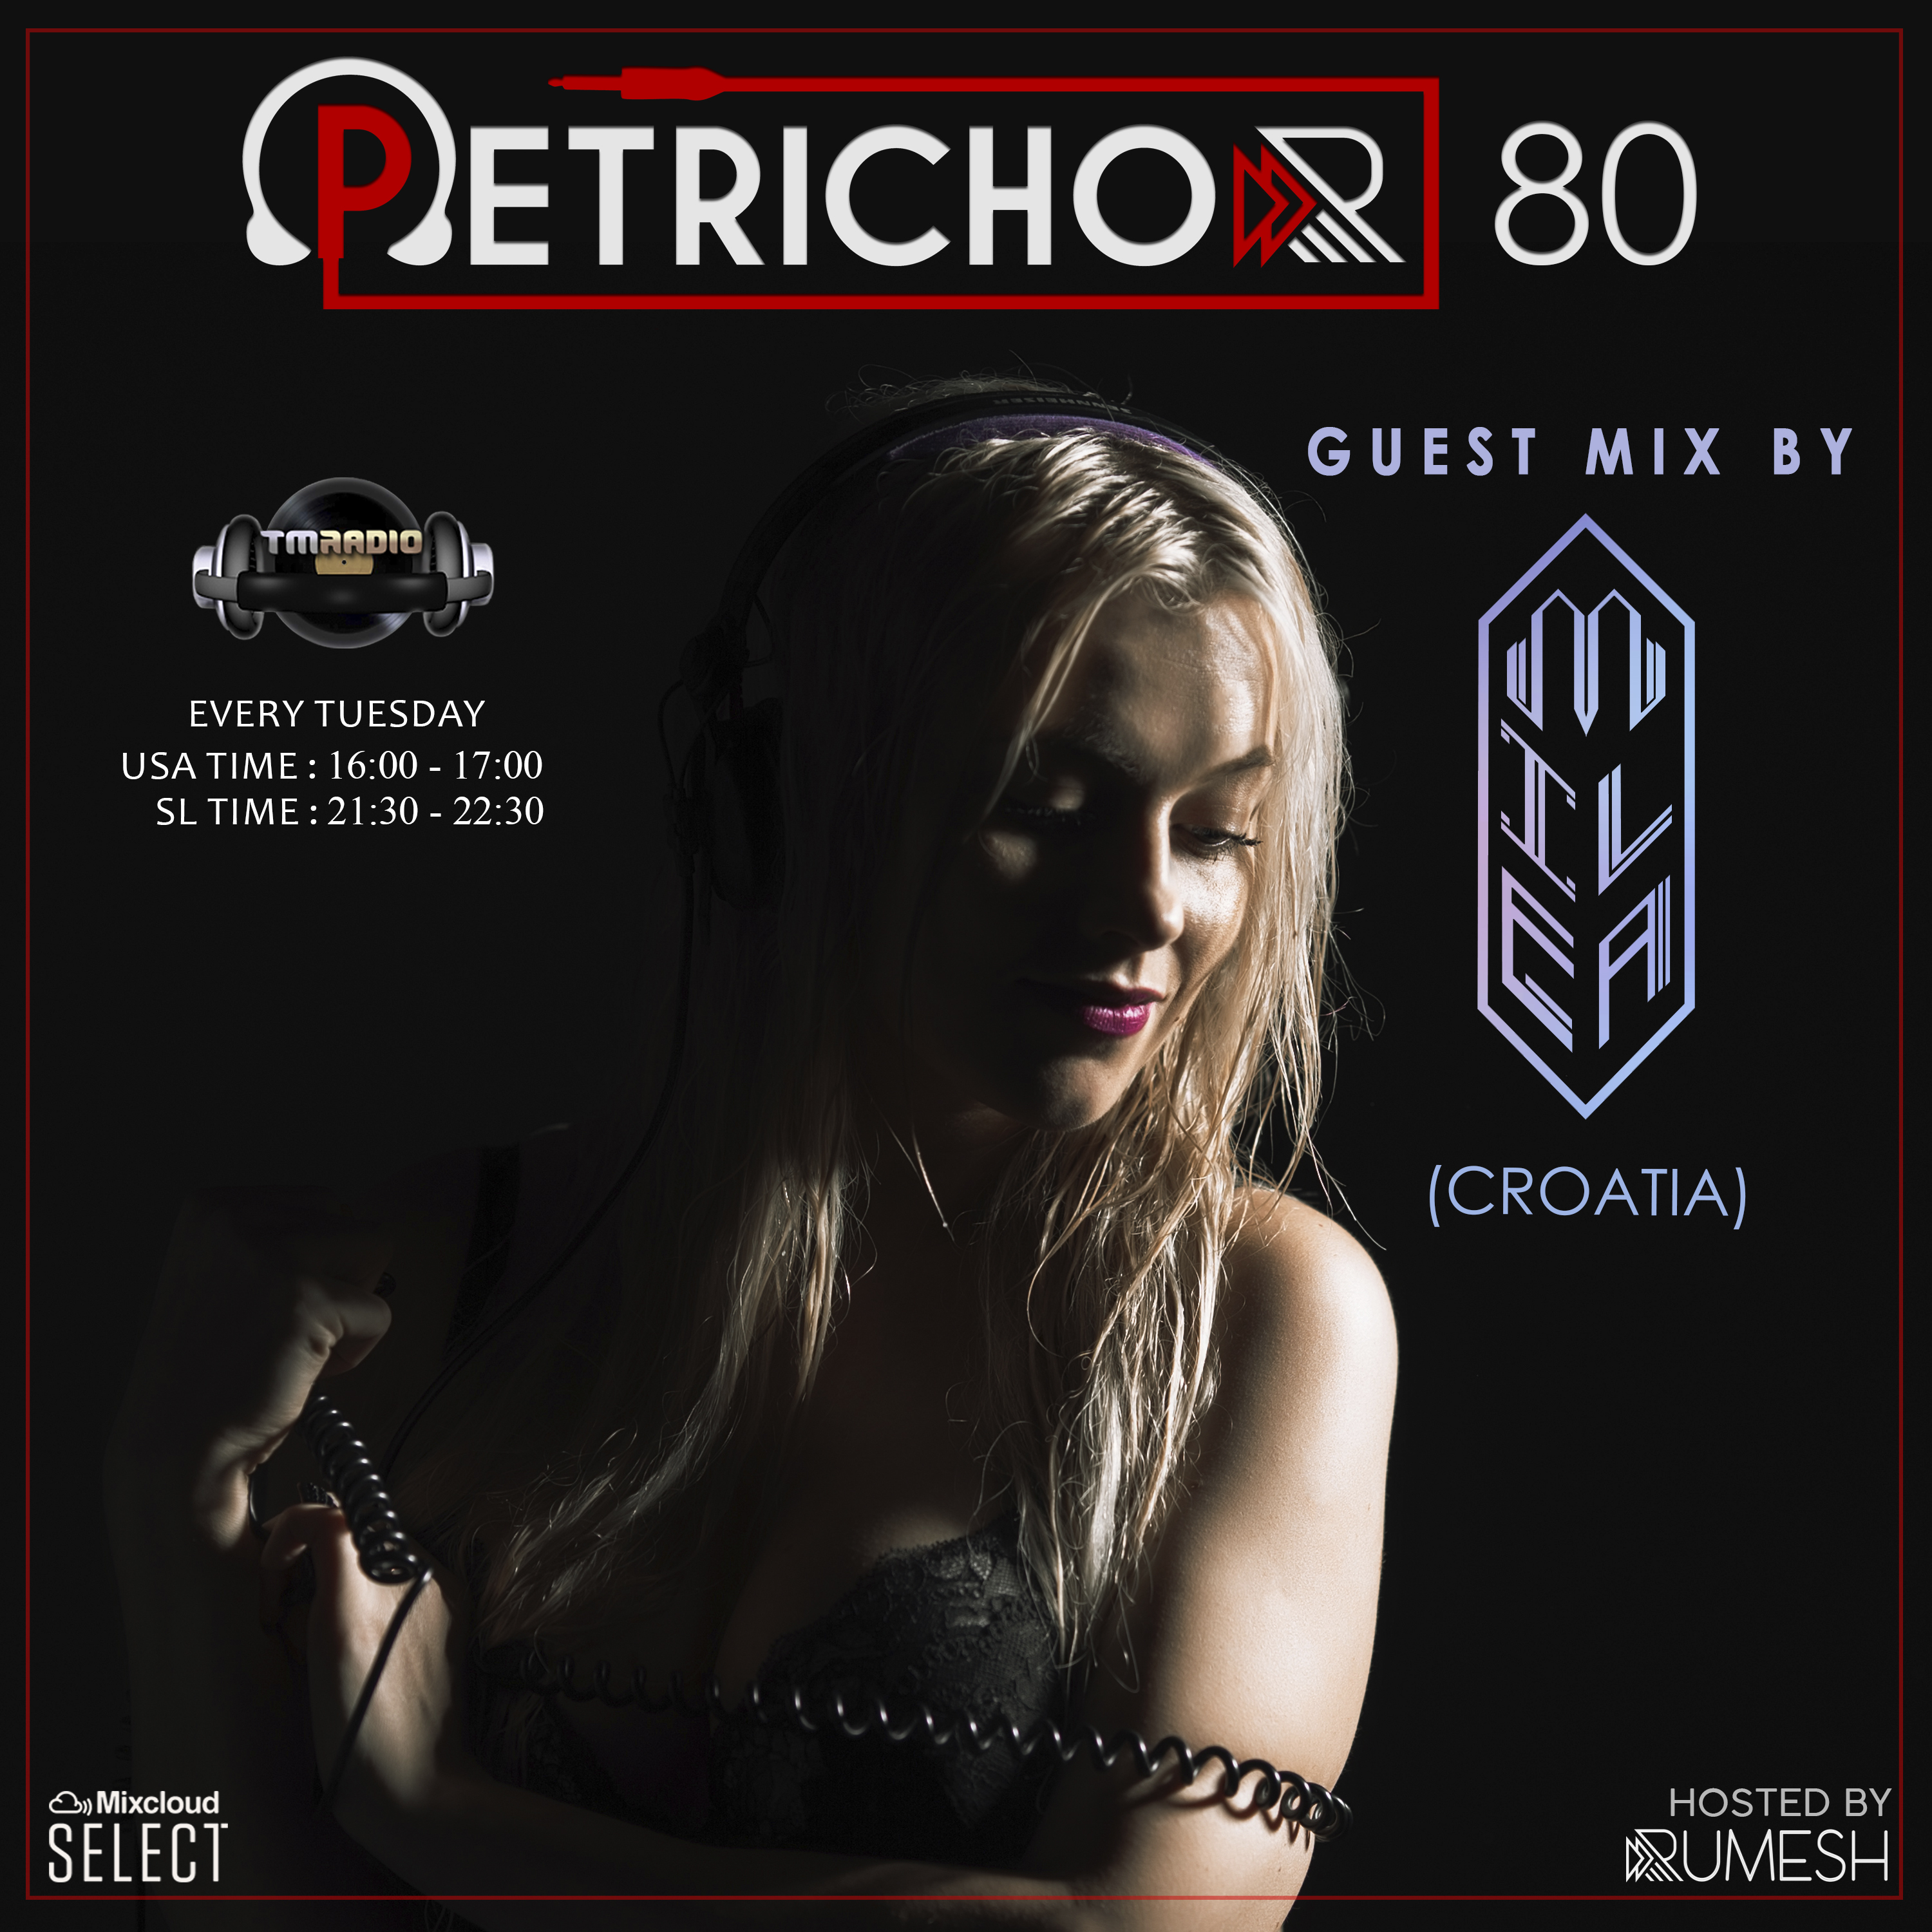 Petrichor :: Petrichor 80 guest mix by Milea (Croatia) (aired on May 19th, 2020) banner logo